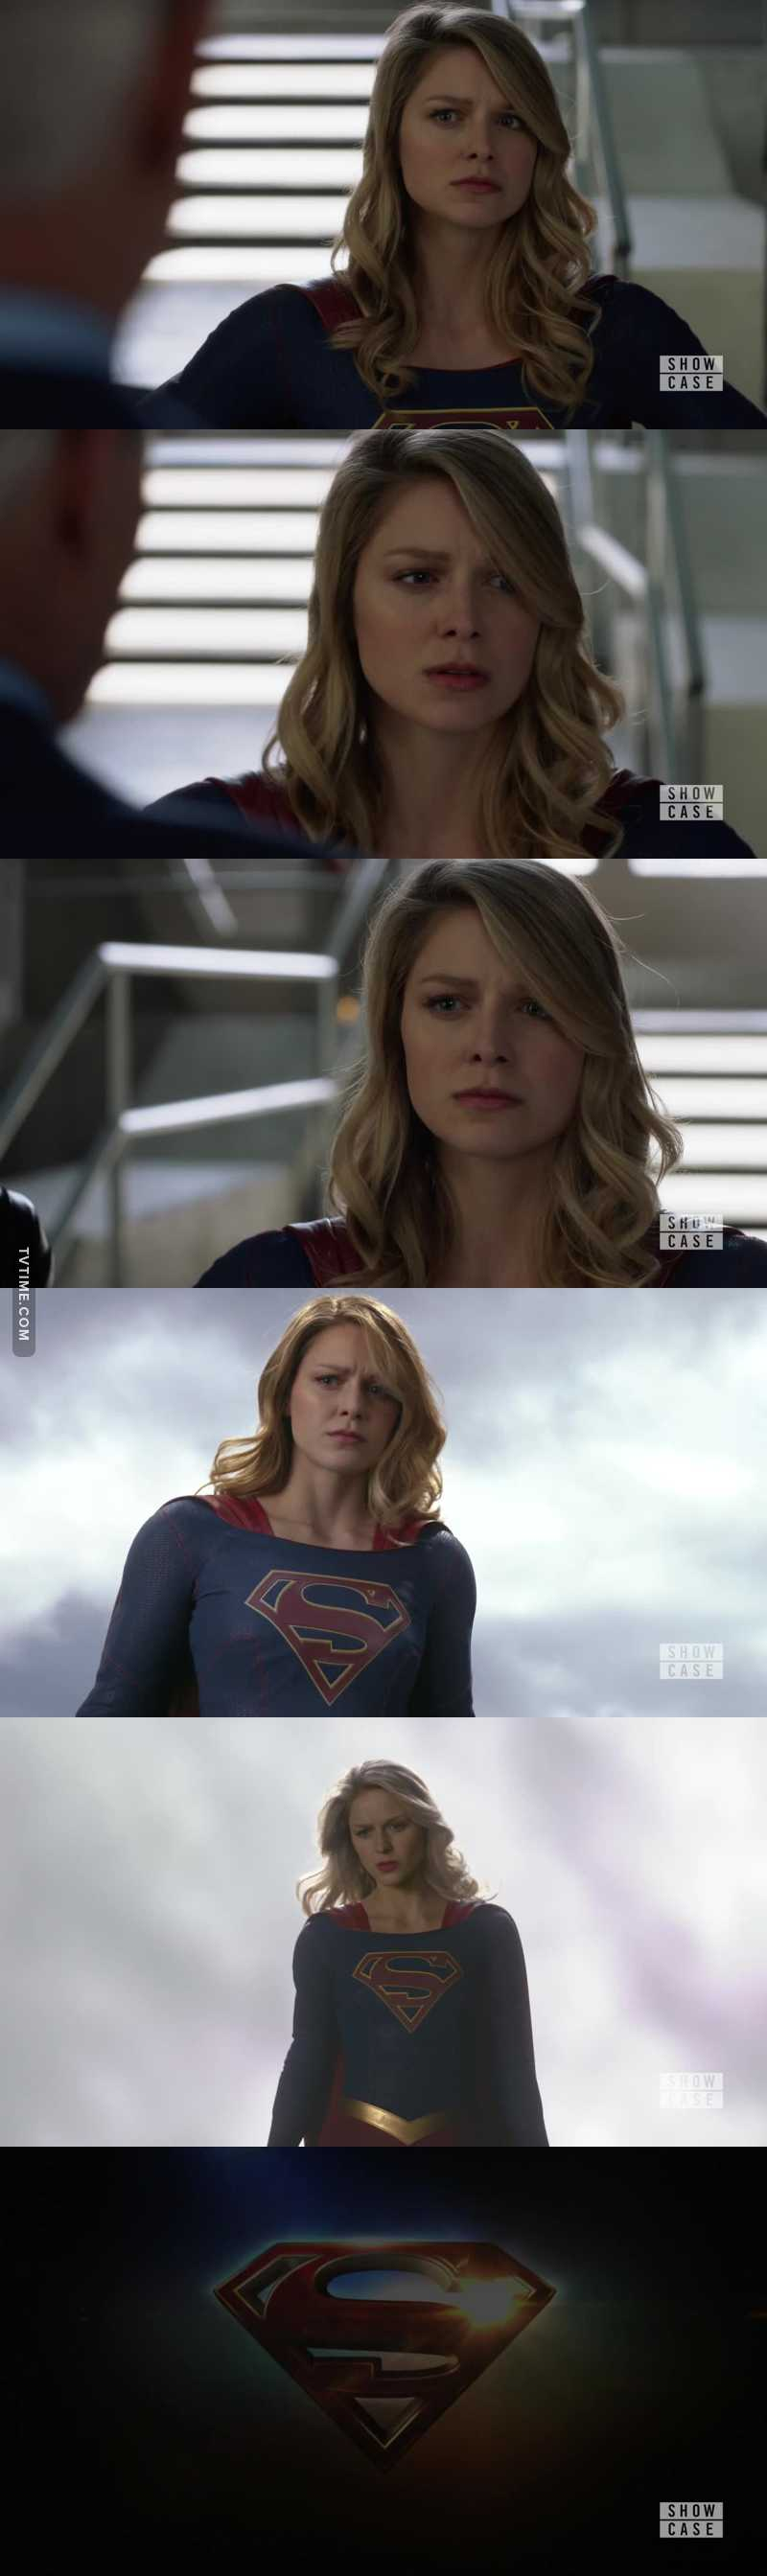 Supergirl is not only for America. She's for the entire Earth. DEO was just trying to control what she did and when she did it. This is why Superman works alone and always has, now Supergirl is as well. Superman and Supergirl are hero's that don't need to be told what, when, why, and how they choose to save people's lives, the world or the entire galaxy. They make their own rules.   Supergirl doesn't owe the human race anything. Especially not her secret identity that keeps everyone she loves and cares about safe. Including herself for that matter. There's a reason for a secret identity, key word secret.   The President is one big ass dick head. He should be the fired instead of Supergirl.  Humans are terrified of the things they don't understand. Which here is aliens 👽